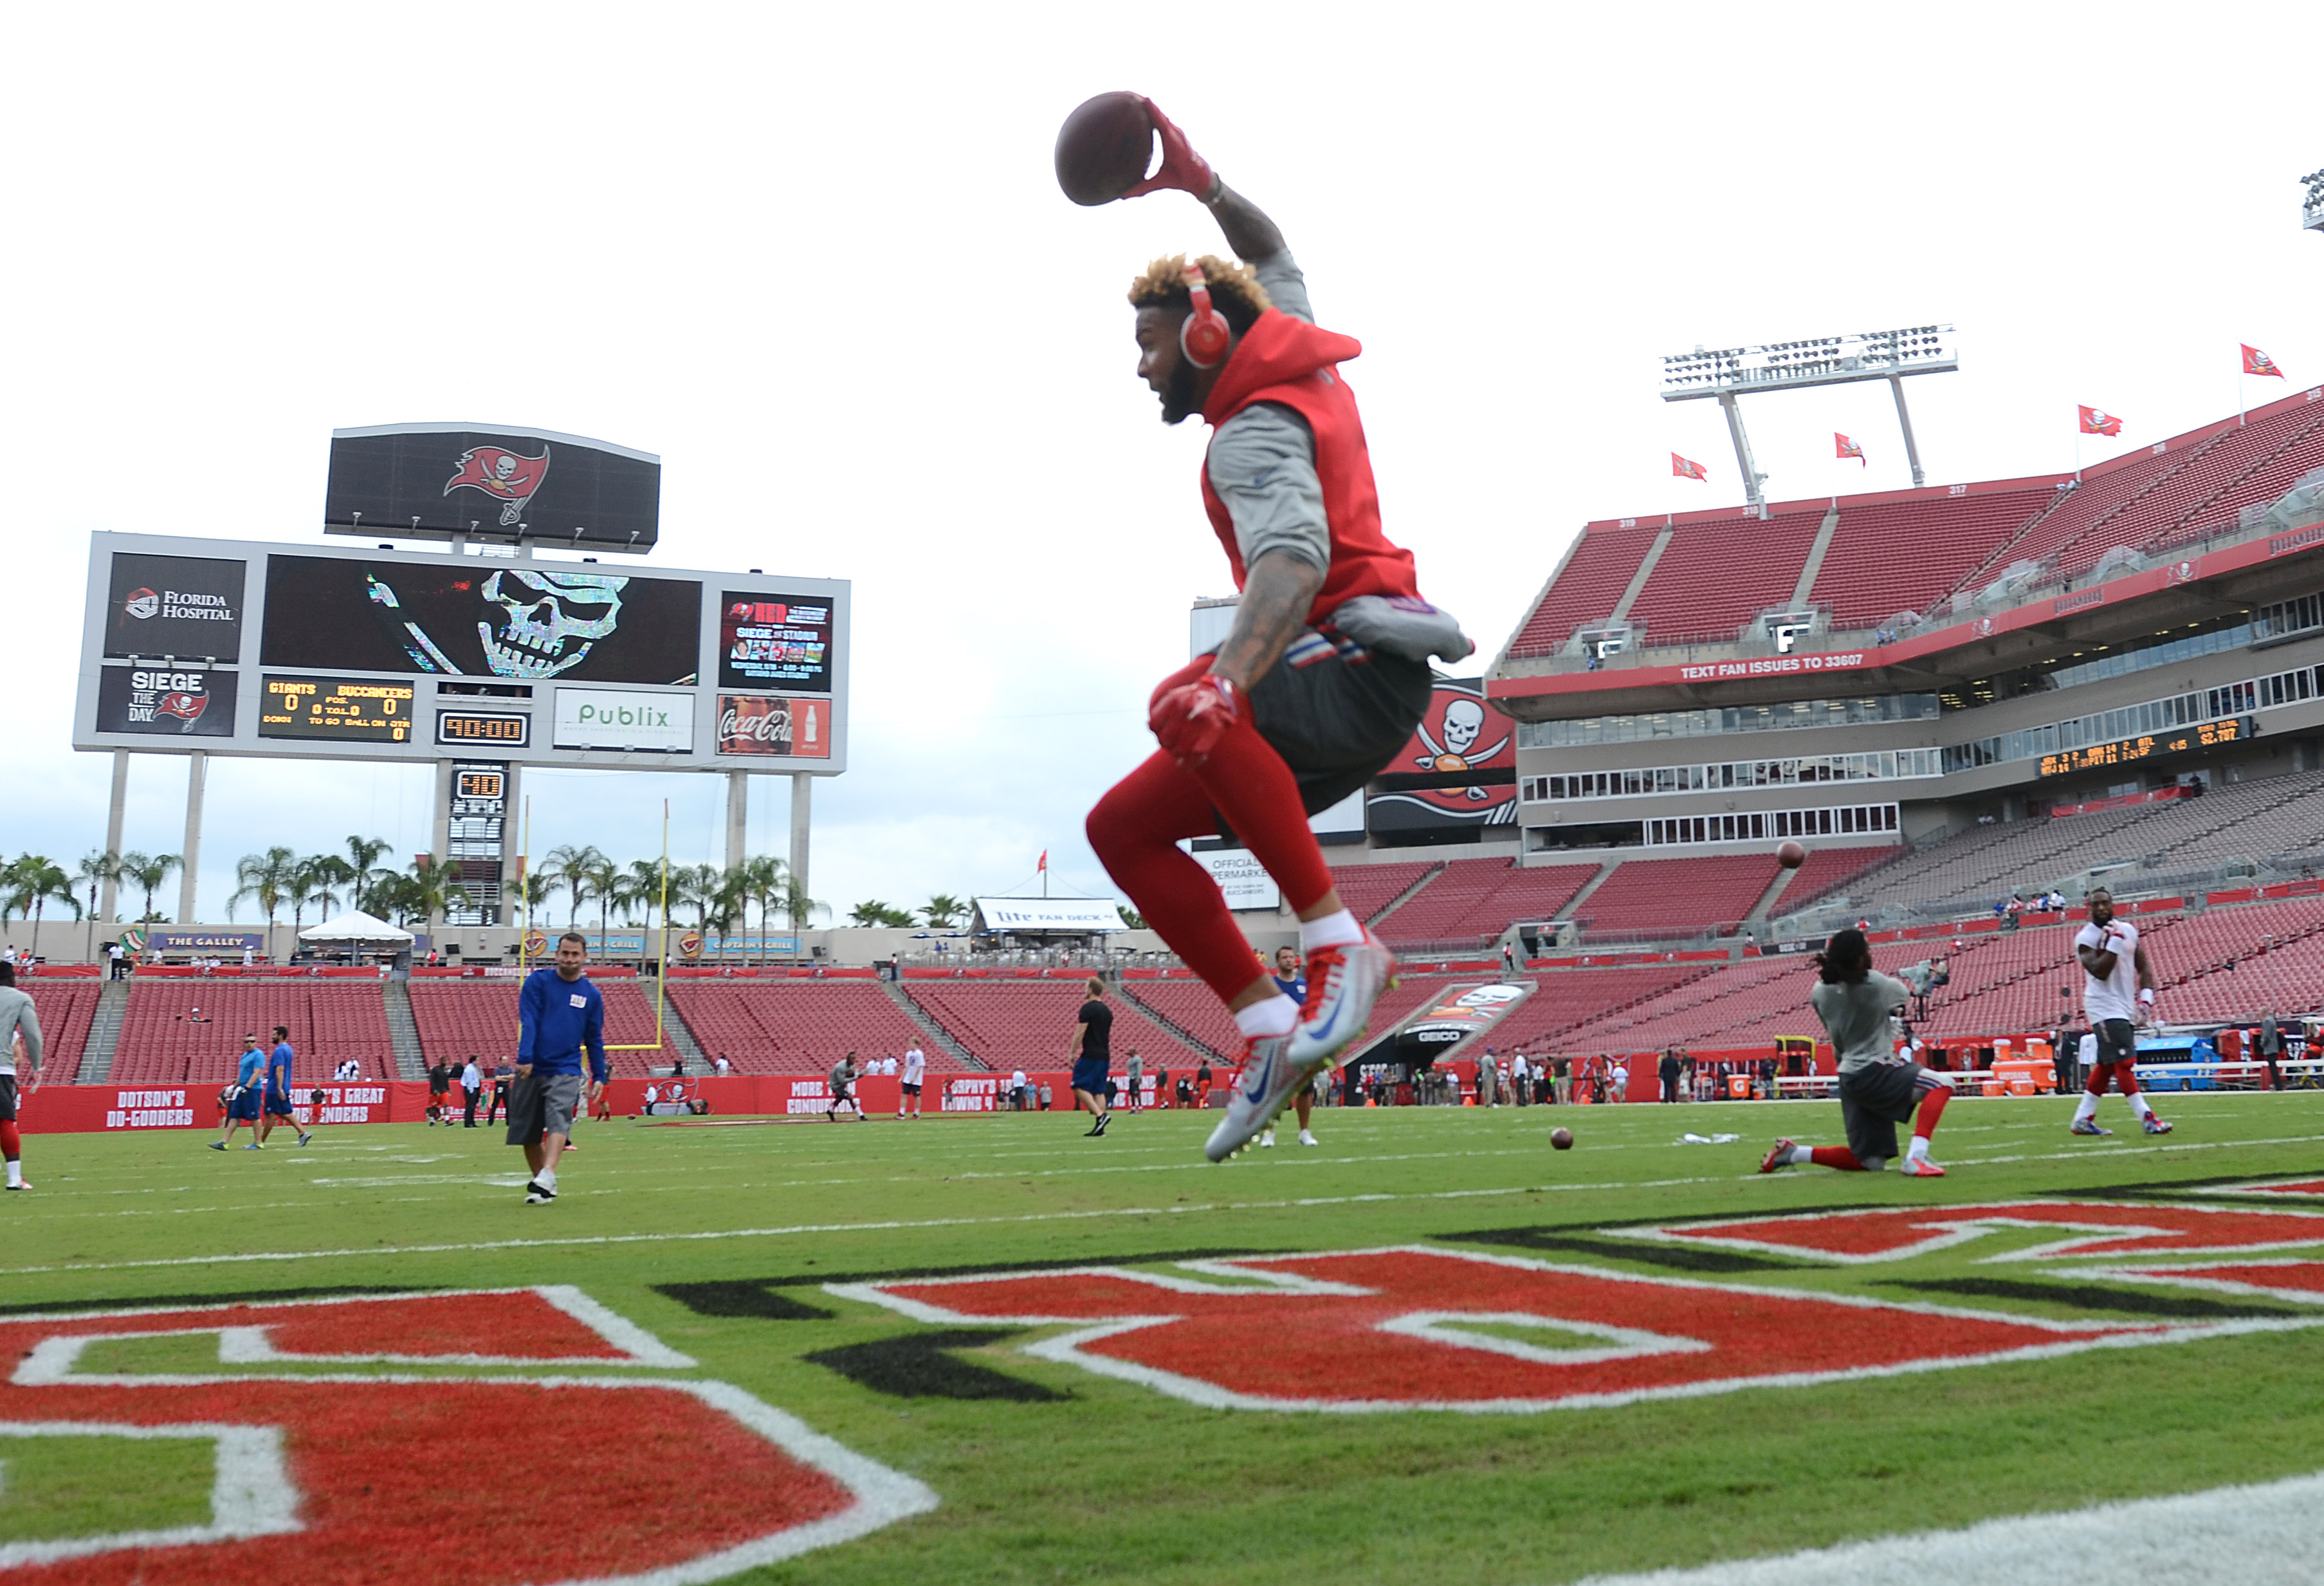 Odell Beckham during a pre-game routine